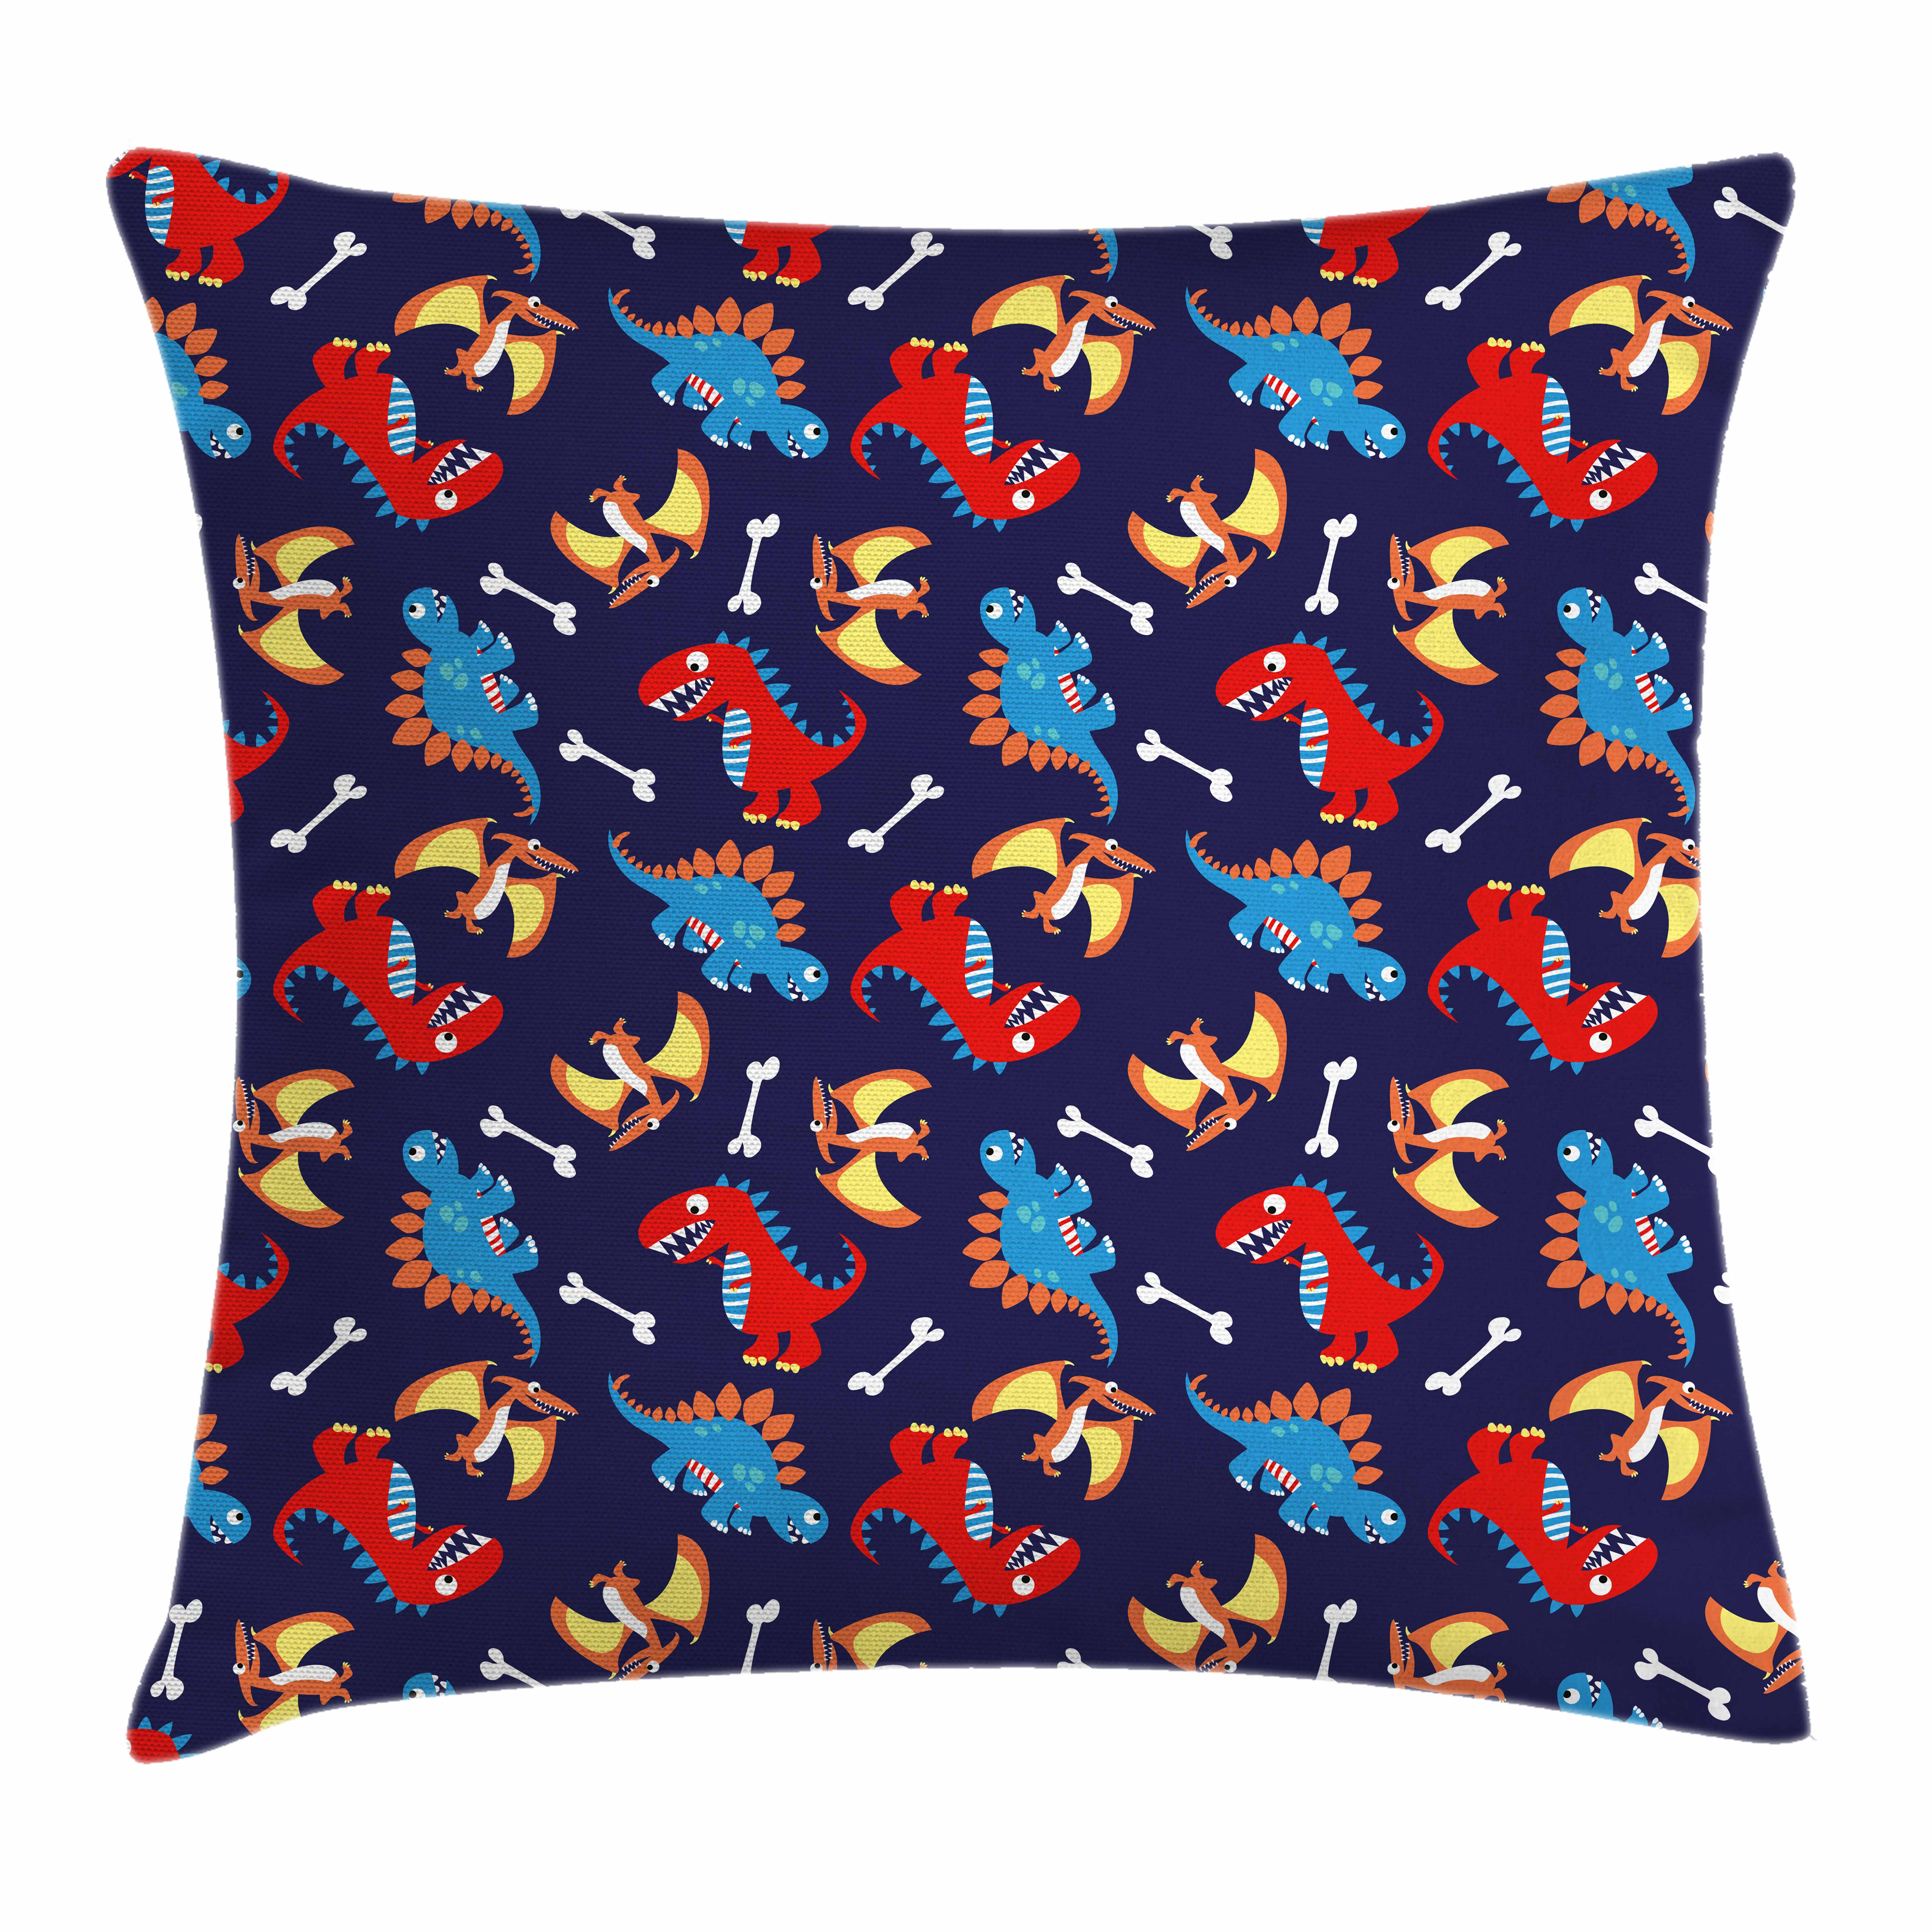 Dinosaur Throw Pillow Cushion Cover, Three Different Cartoon Dinosaurs Funny Expressions and Bones Kids Theme, Decorative Square Accent Pillow Case, 16 X 16 Inches, Navy Blue Orange Red, by Ambesonne